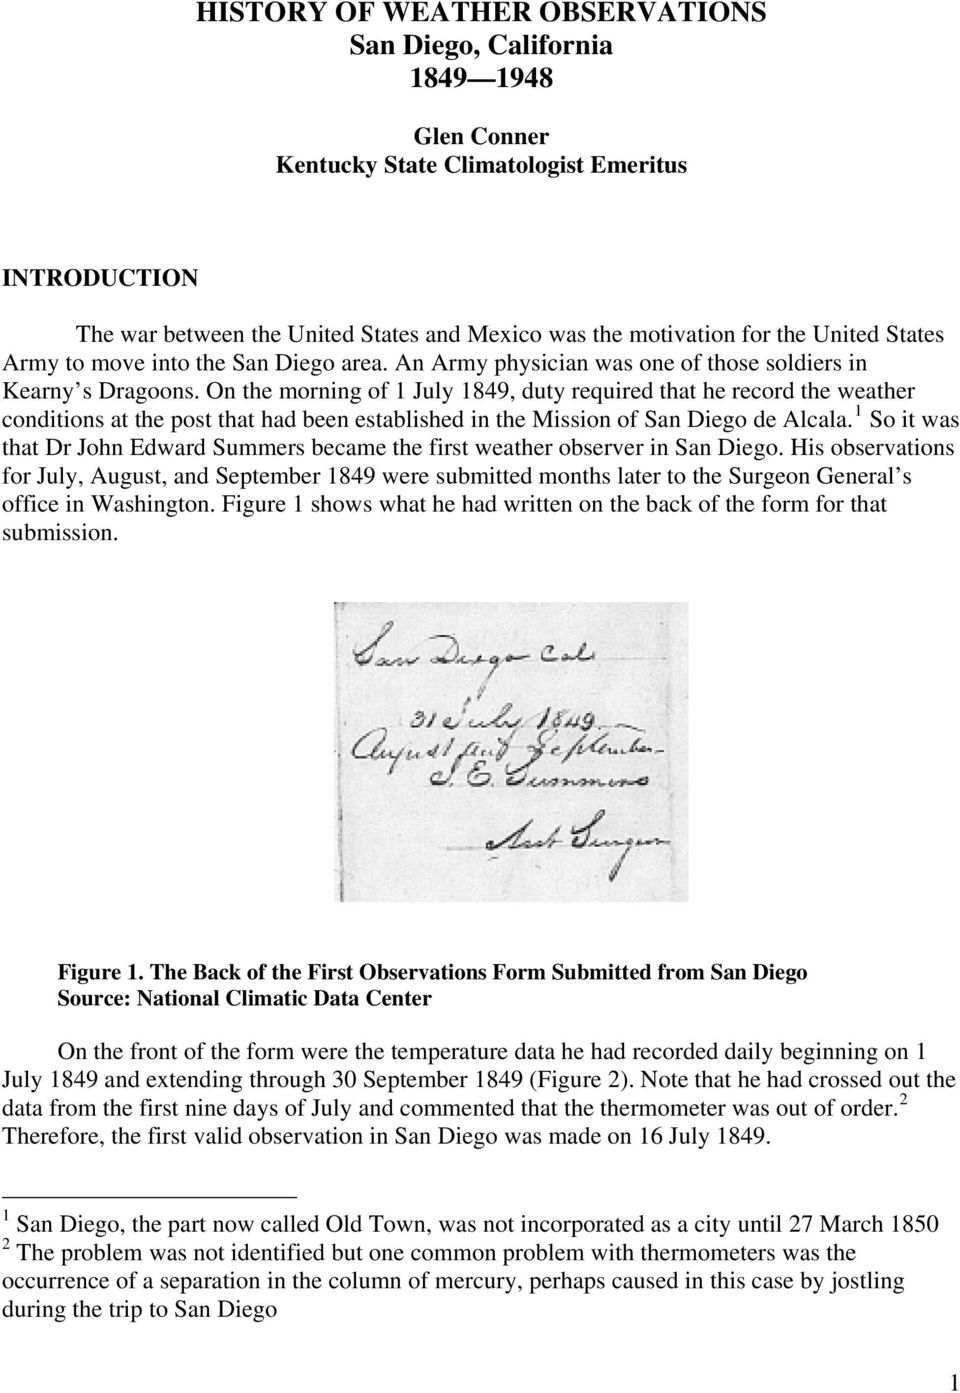 HISTORY OF WEATHER OBSERVATIONS SAN DIEGO, CALIFORNIA - PDF